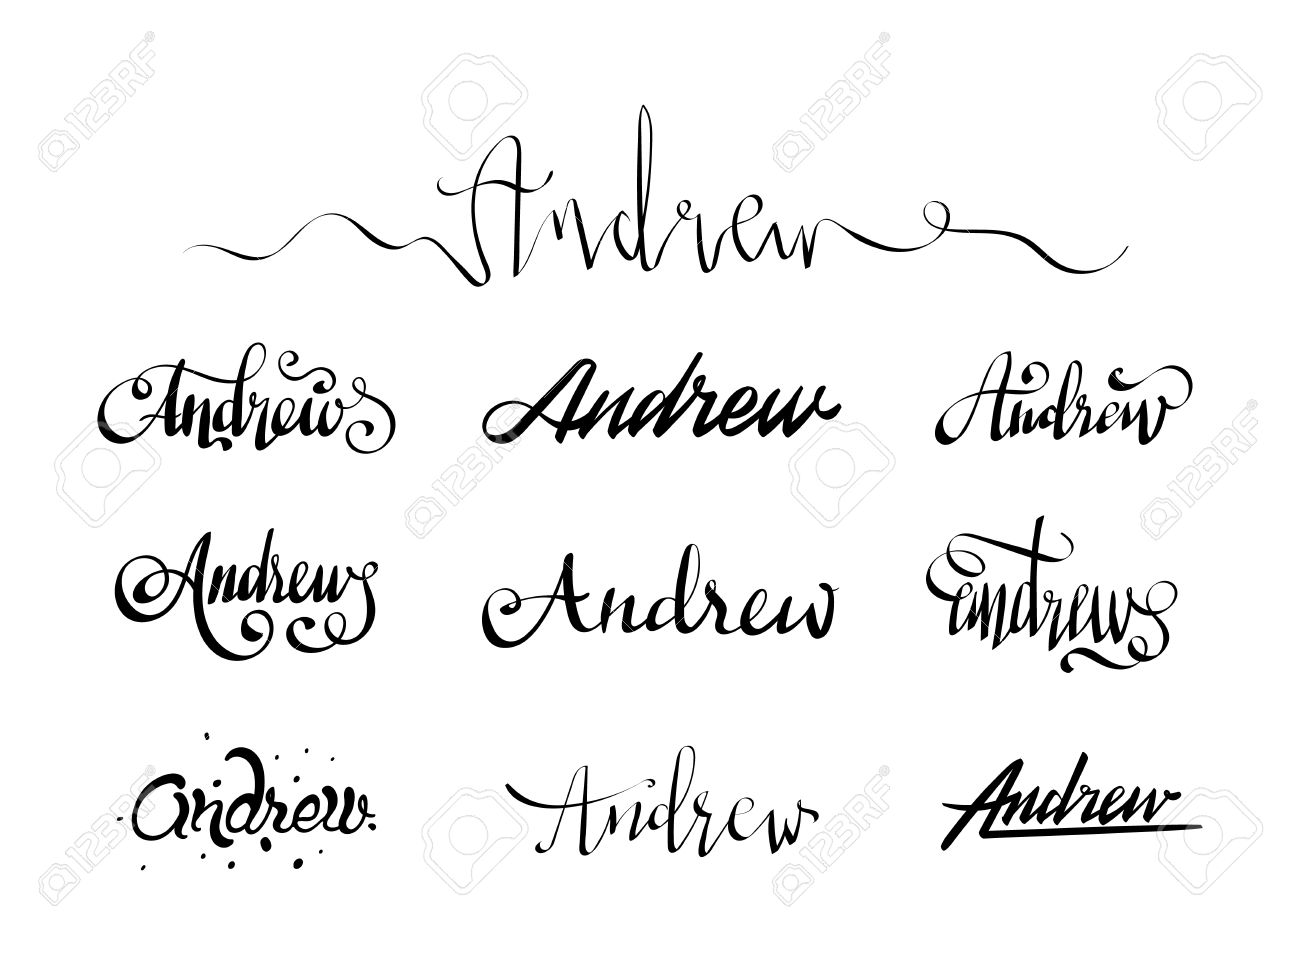 Calligraphy Tattoo Picture Personal Name Andrew Vector Handwritten Calligraphy Tattoo Design